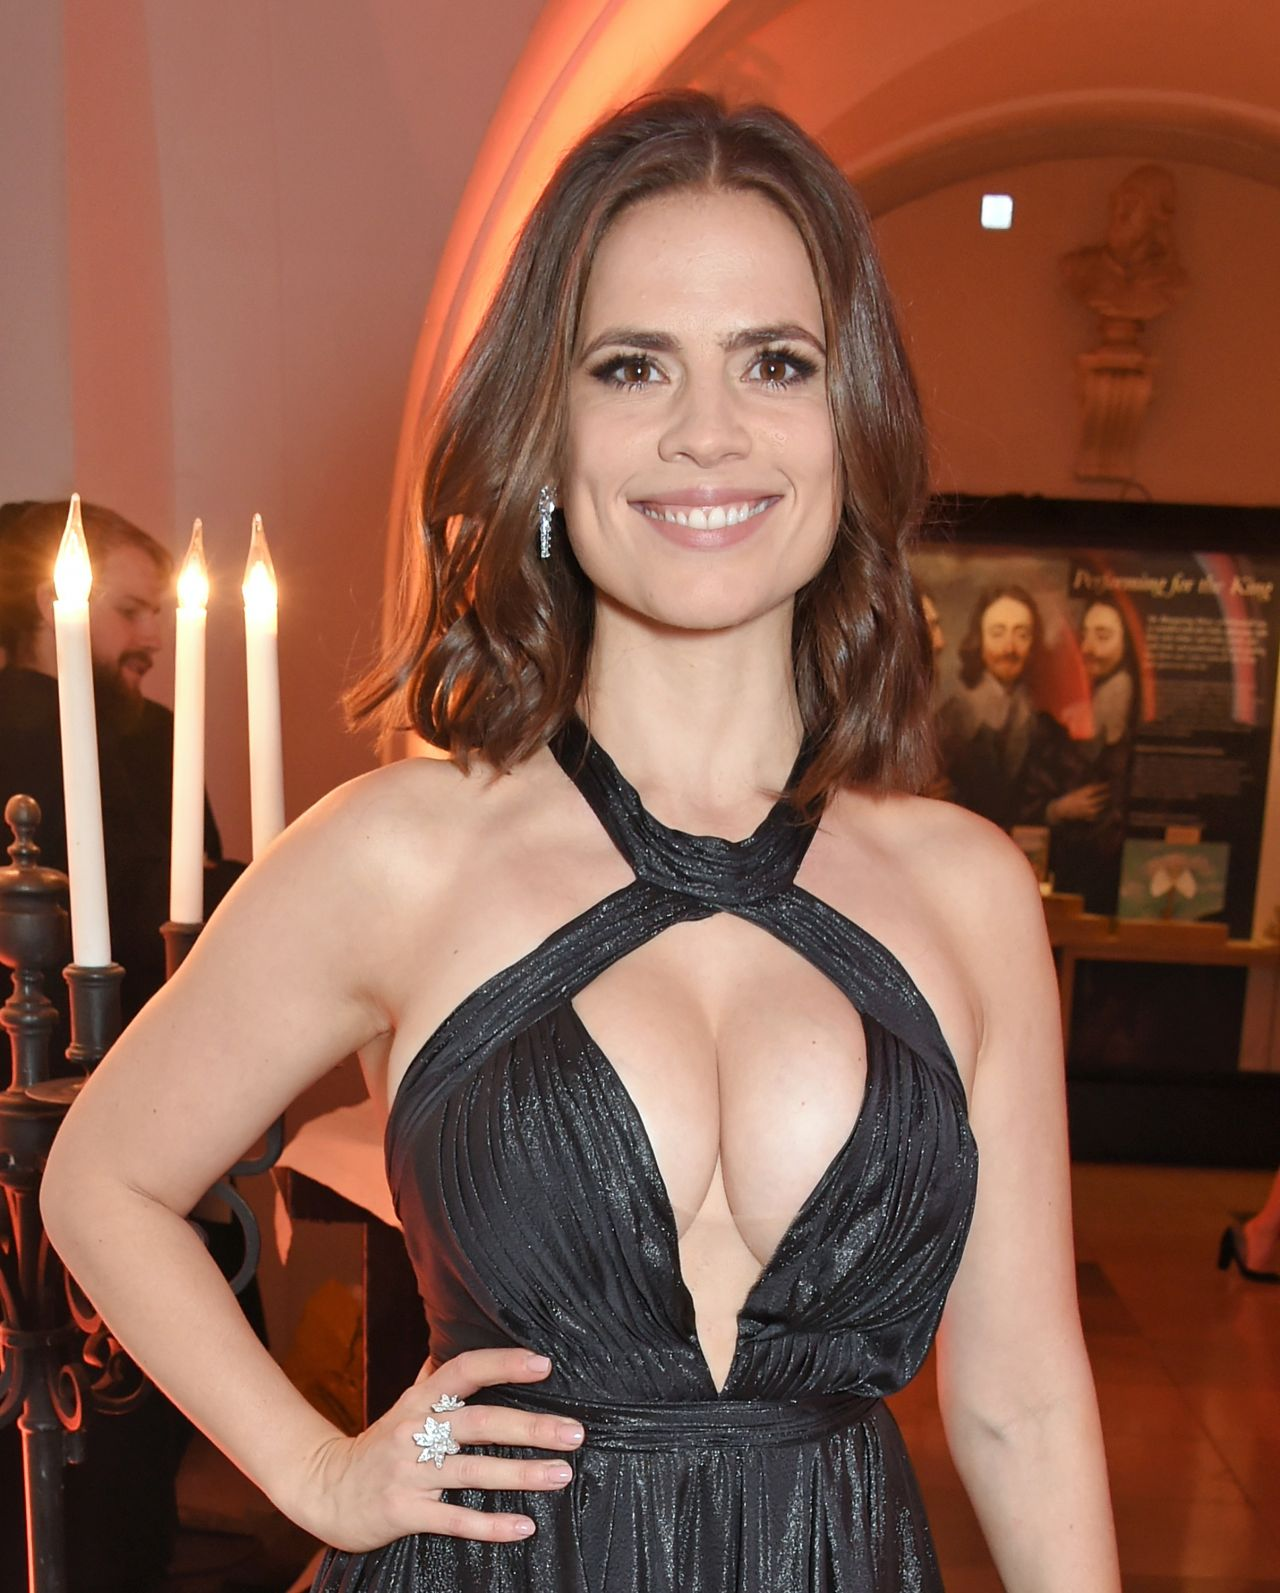 hayley atwell nackt